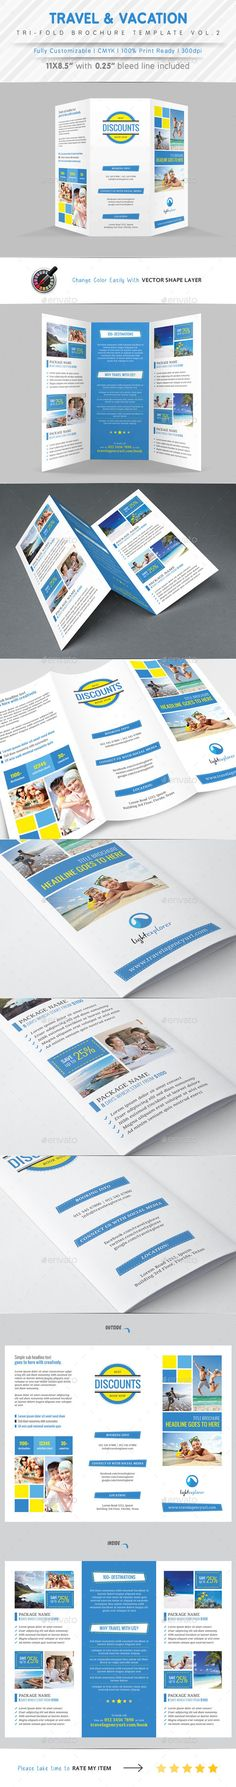 Cruise Travel Brochure Illustrator Template By @Stocklayouts